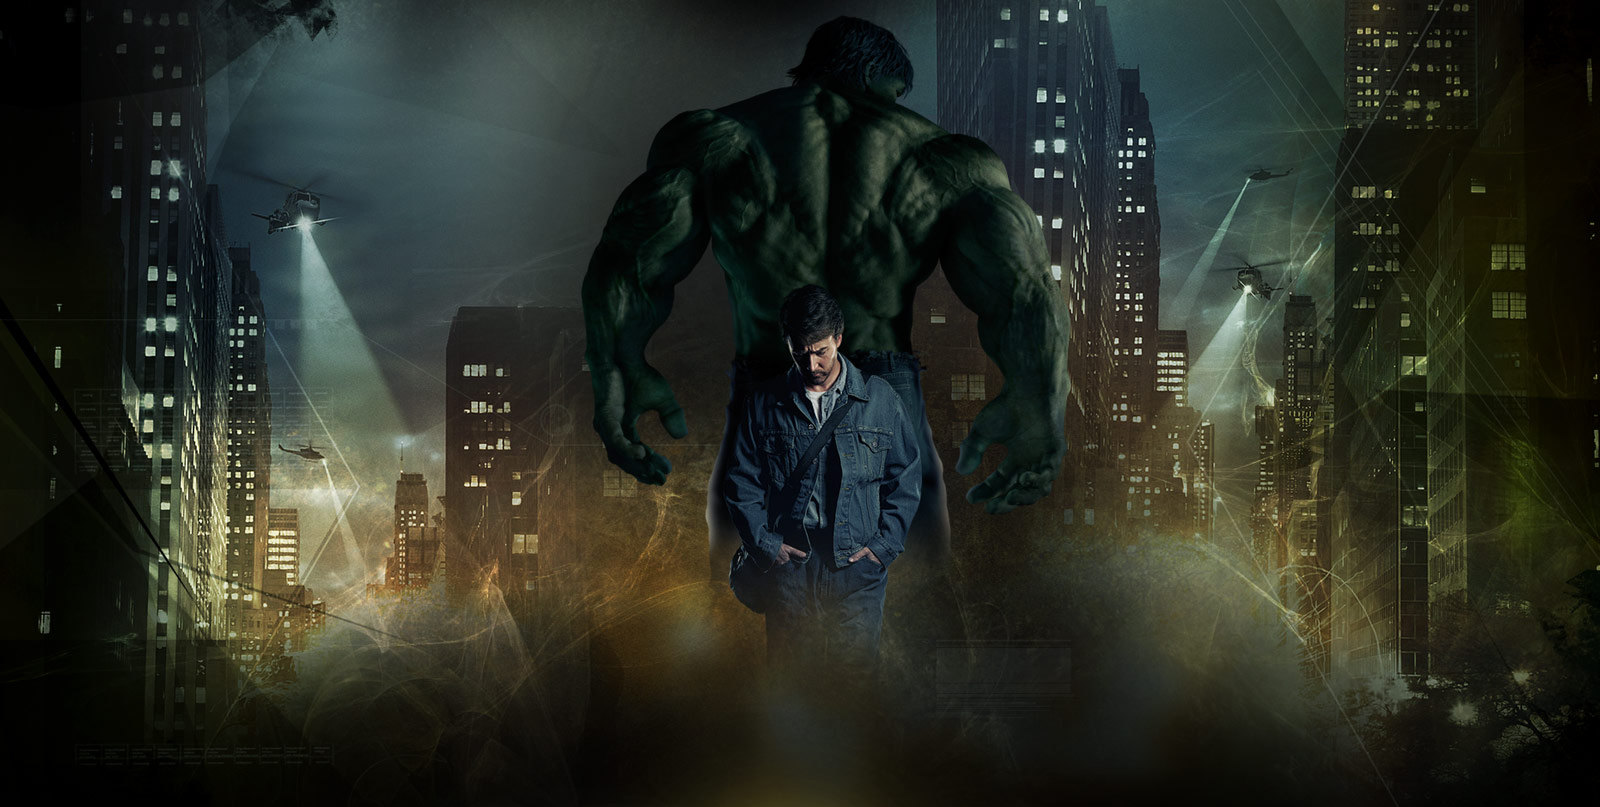 http://3.bp.blogspot.com/-5vzHSxkzgTg/T5ZcyLS8uOI/AAAAAAAAAMw/OL2_9Xg6Xs8/s1600/Edward_Norton_in_The_Incredible_Hulk_Wallpaper_8_800.jpg